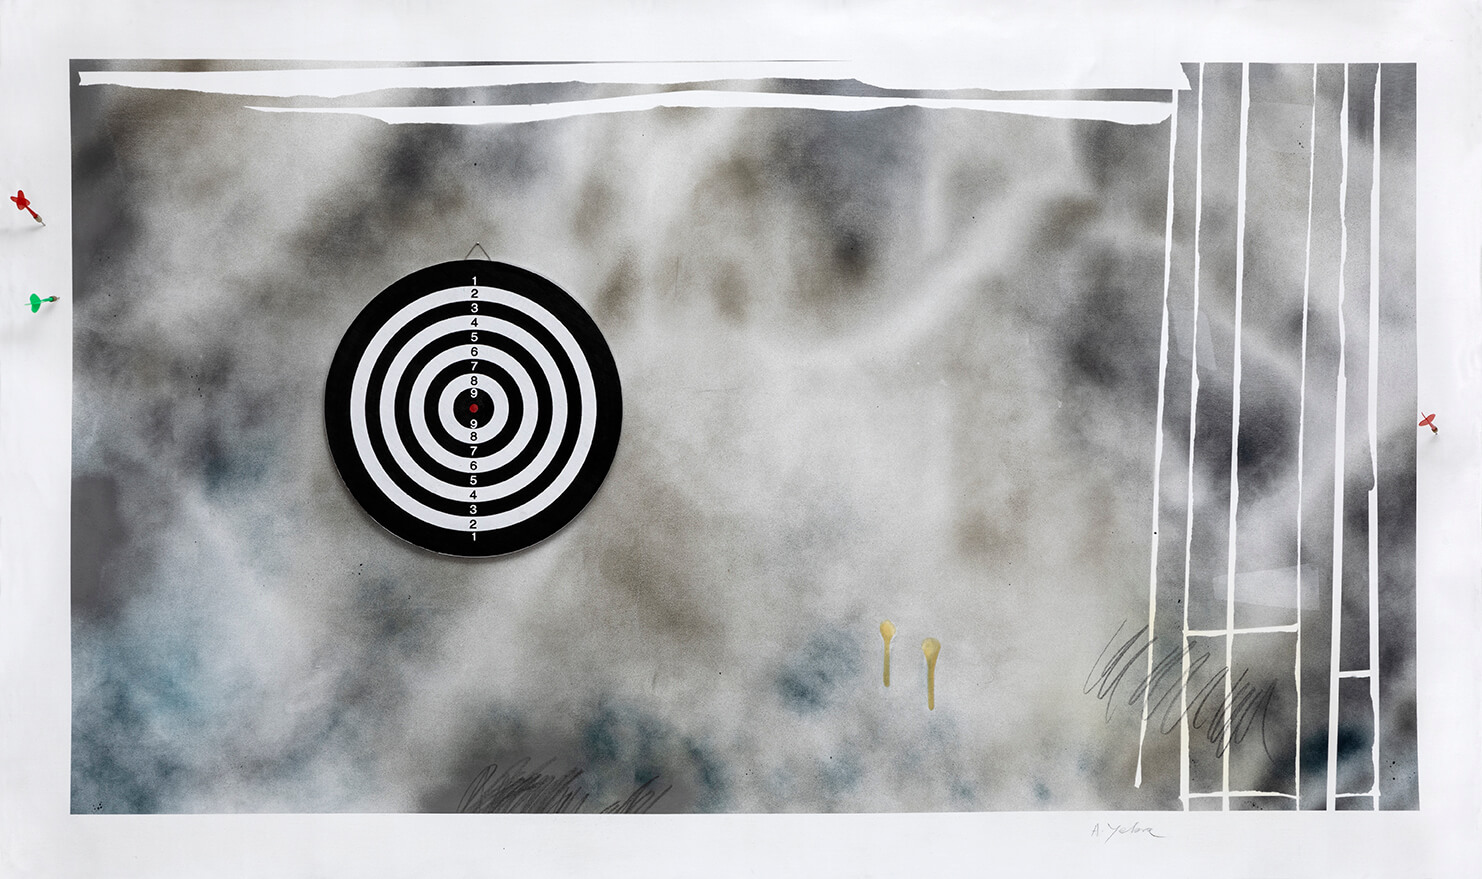 """""""The Economy of the Gaze: target, bait, prey,"""" spray, acrylic, varnish, graphite, target and darts on canvas, 76.77 x 49.61 inch"""